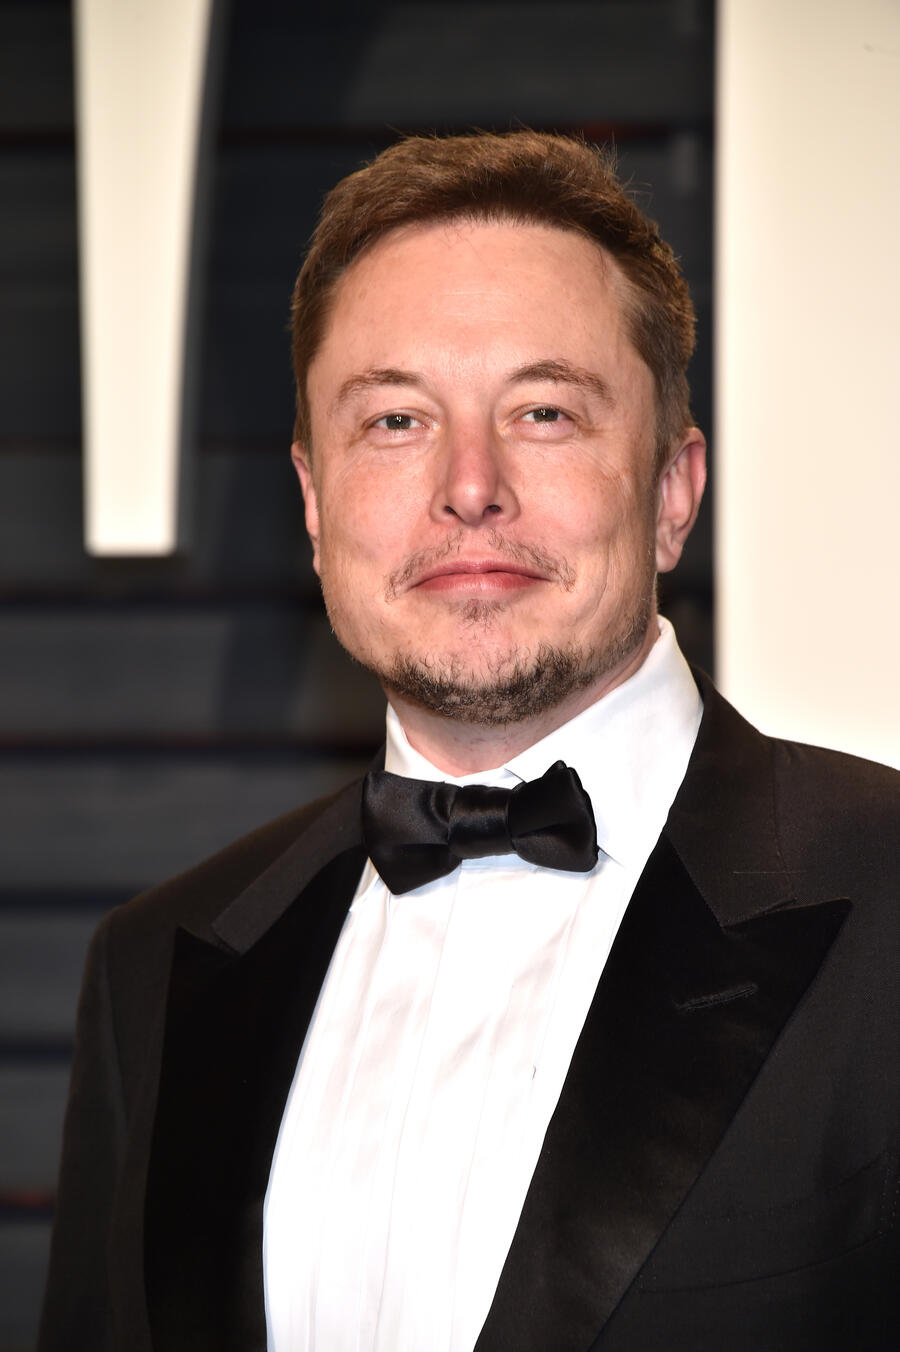 BEVERLY HILLS, CA - FEBRUARY 26: SpaceX CEO  Elon Musk attends the 2017 Vanity Fair Oscar Party hosted by Graydon Carter at Wallis Annenberg Center for the Performing Arts on February 26, 2017 in Beverly Hills, California.  (Photo by Pascal Le Segretain/Getty Images)